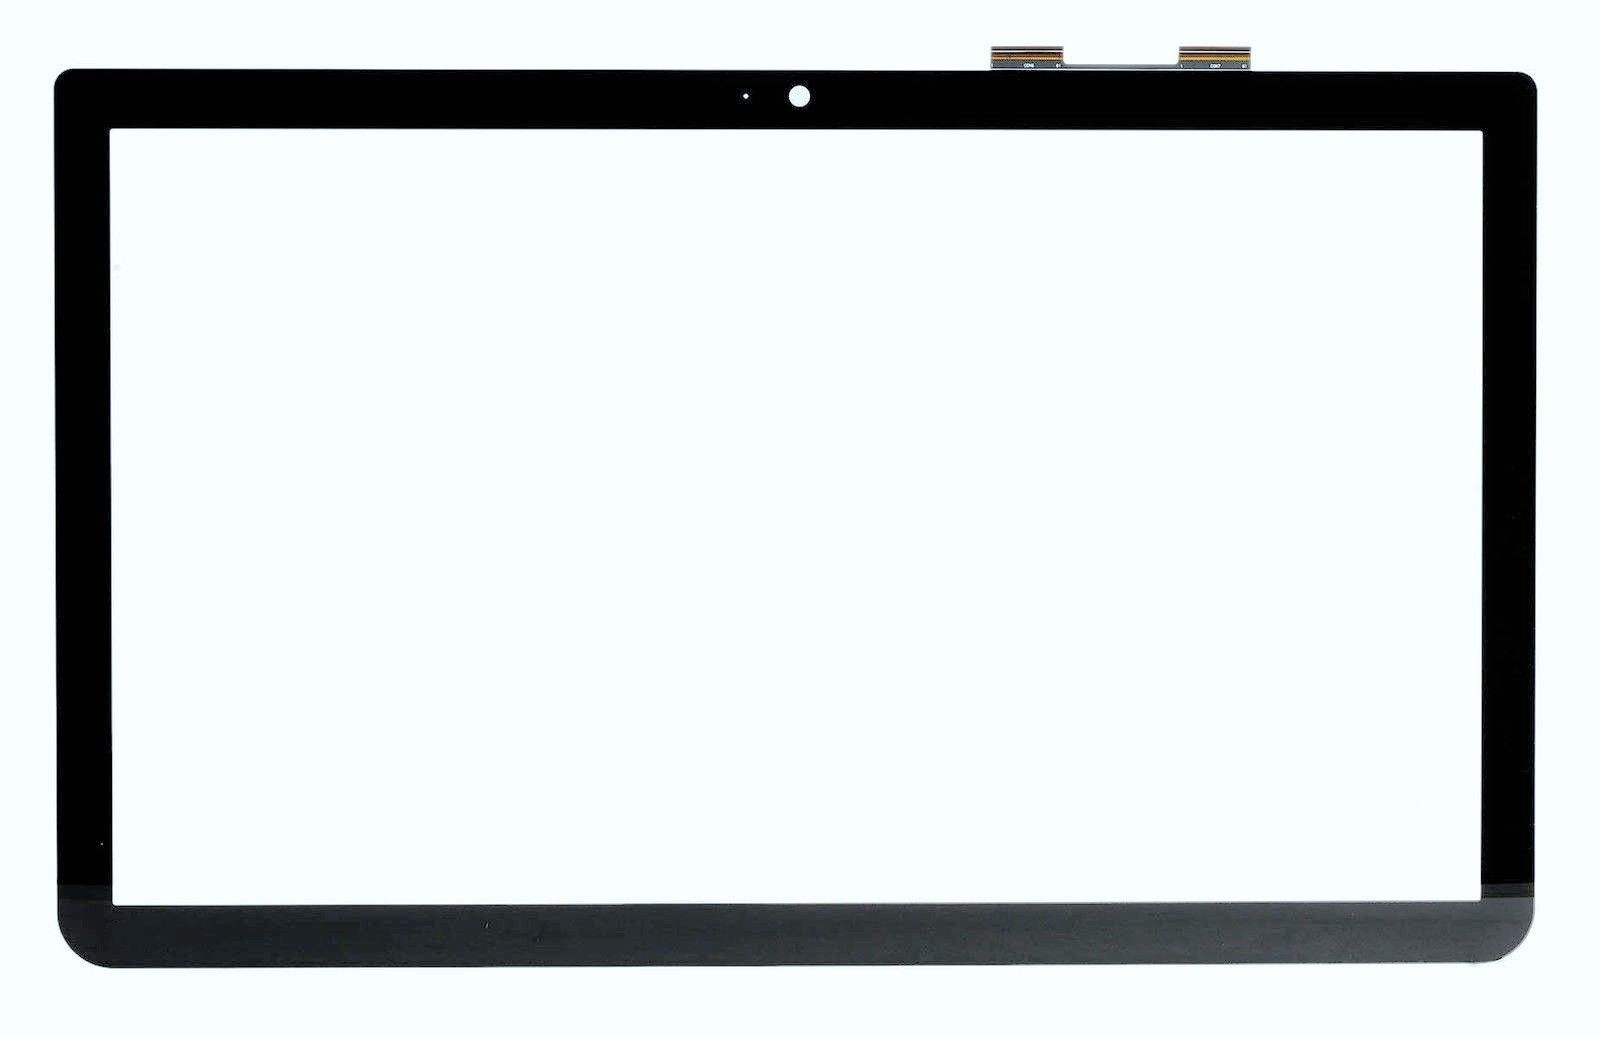 NEW 15.6 OEM For Toshiba Satellite S55T S55T-B Series Touch Screen Glass Digitizer for toshiba satellite p55t a5118 p55t a5116 p55t a5202 p55t a5200 p55t a5312 p50t a121 10u p50t a01c 01n touch glass screen